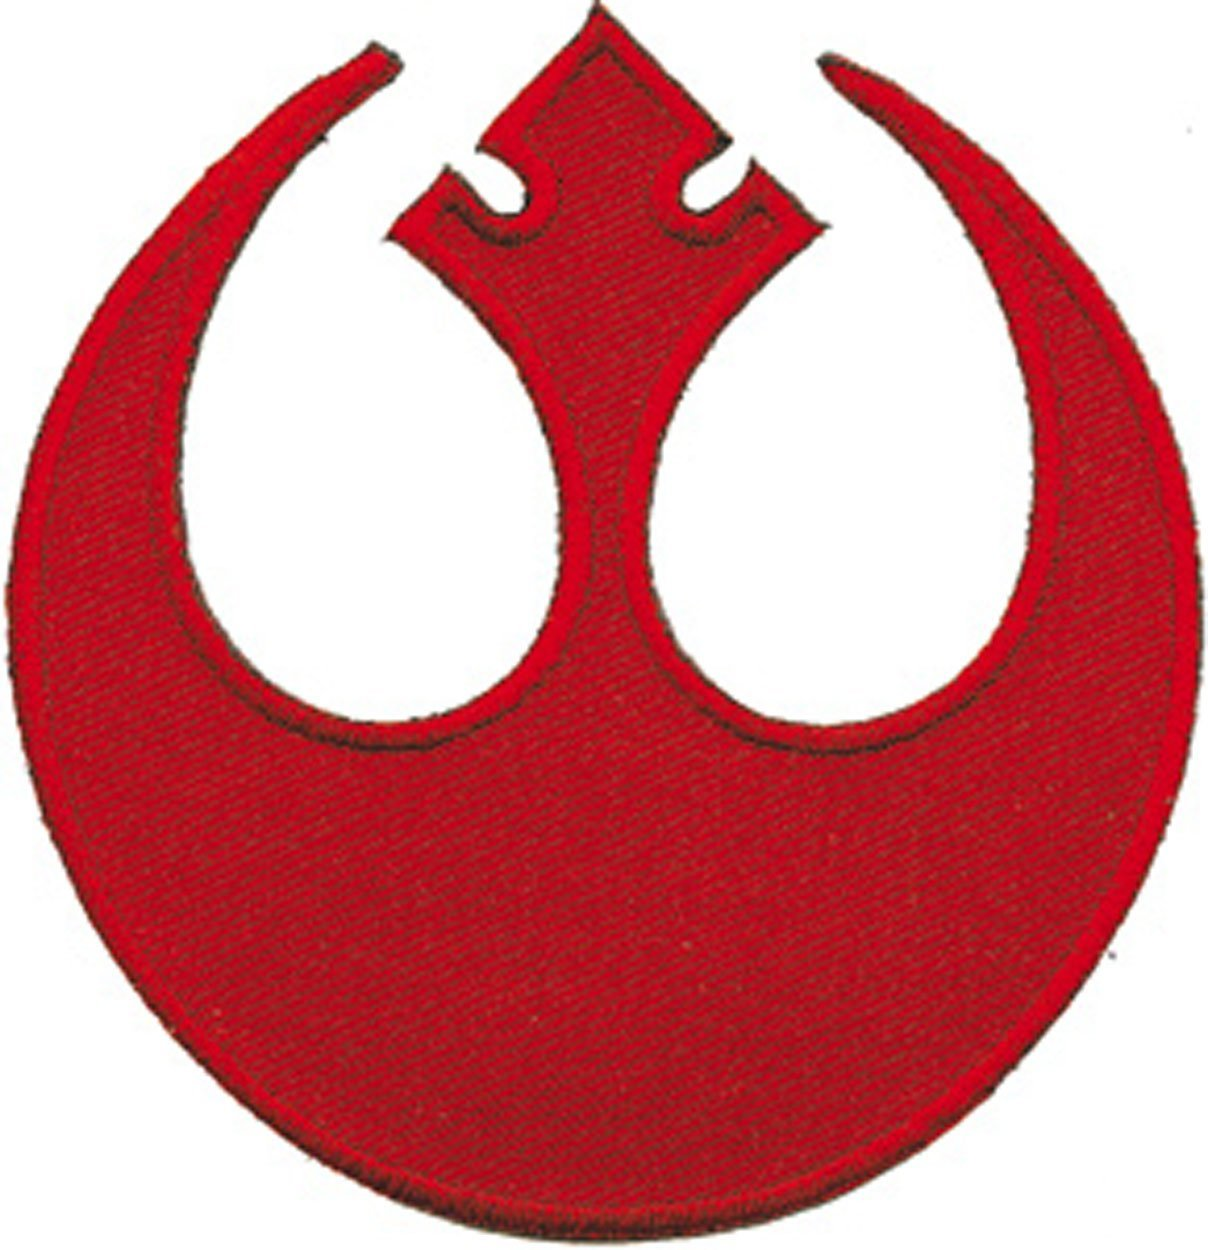 "STAR WARS REVEL, Iron-On / Sew-On Disney Officially Licensed Movie & TV Artwork, 3"" x 3"" Embroidered Patch"